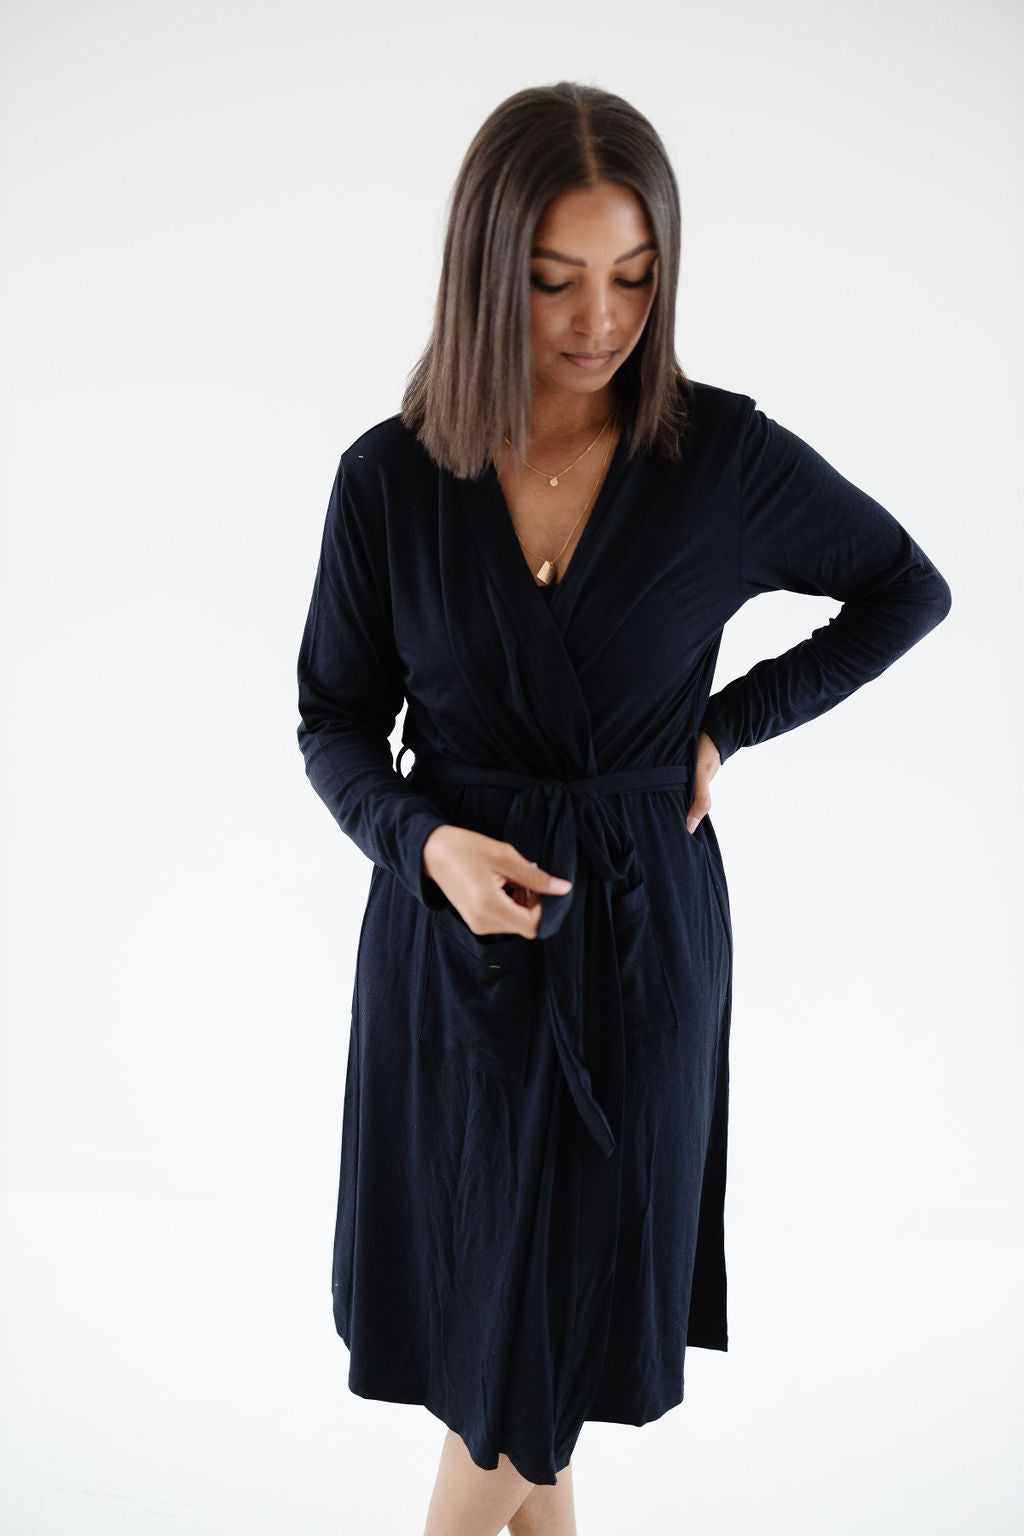 Robe in Black